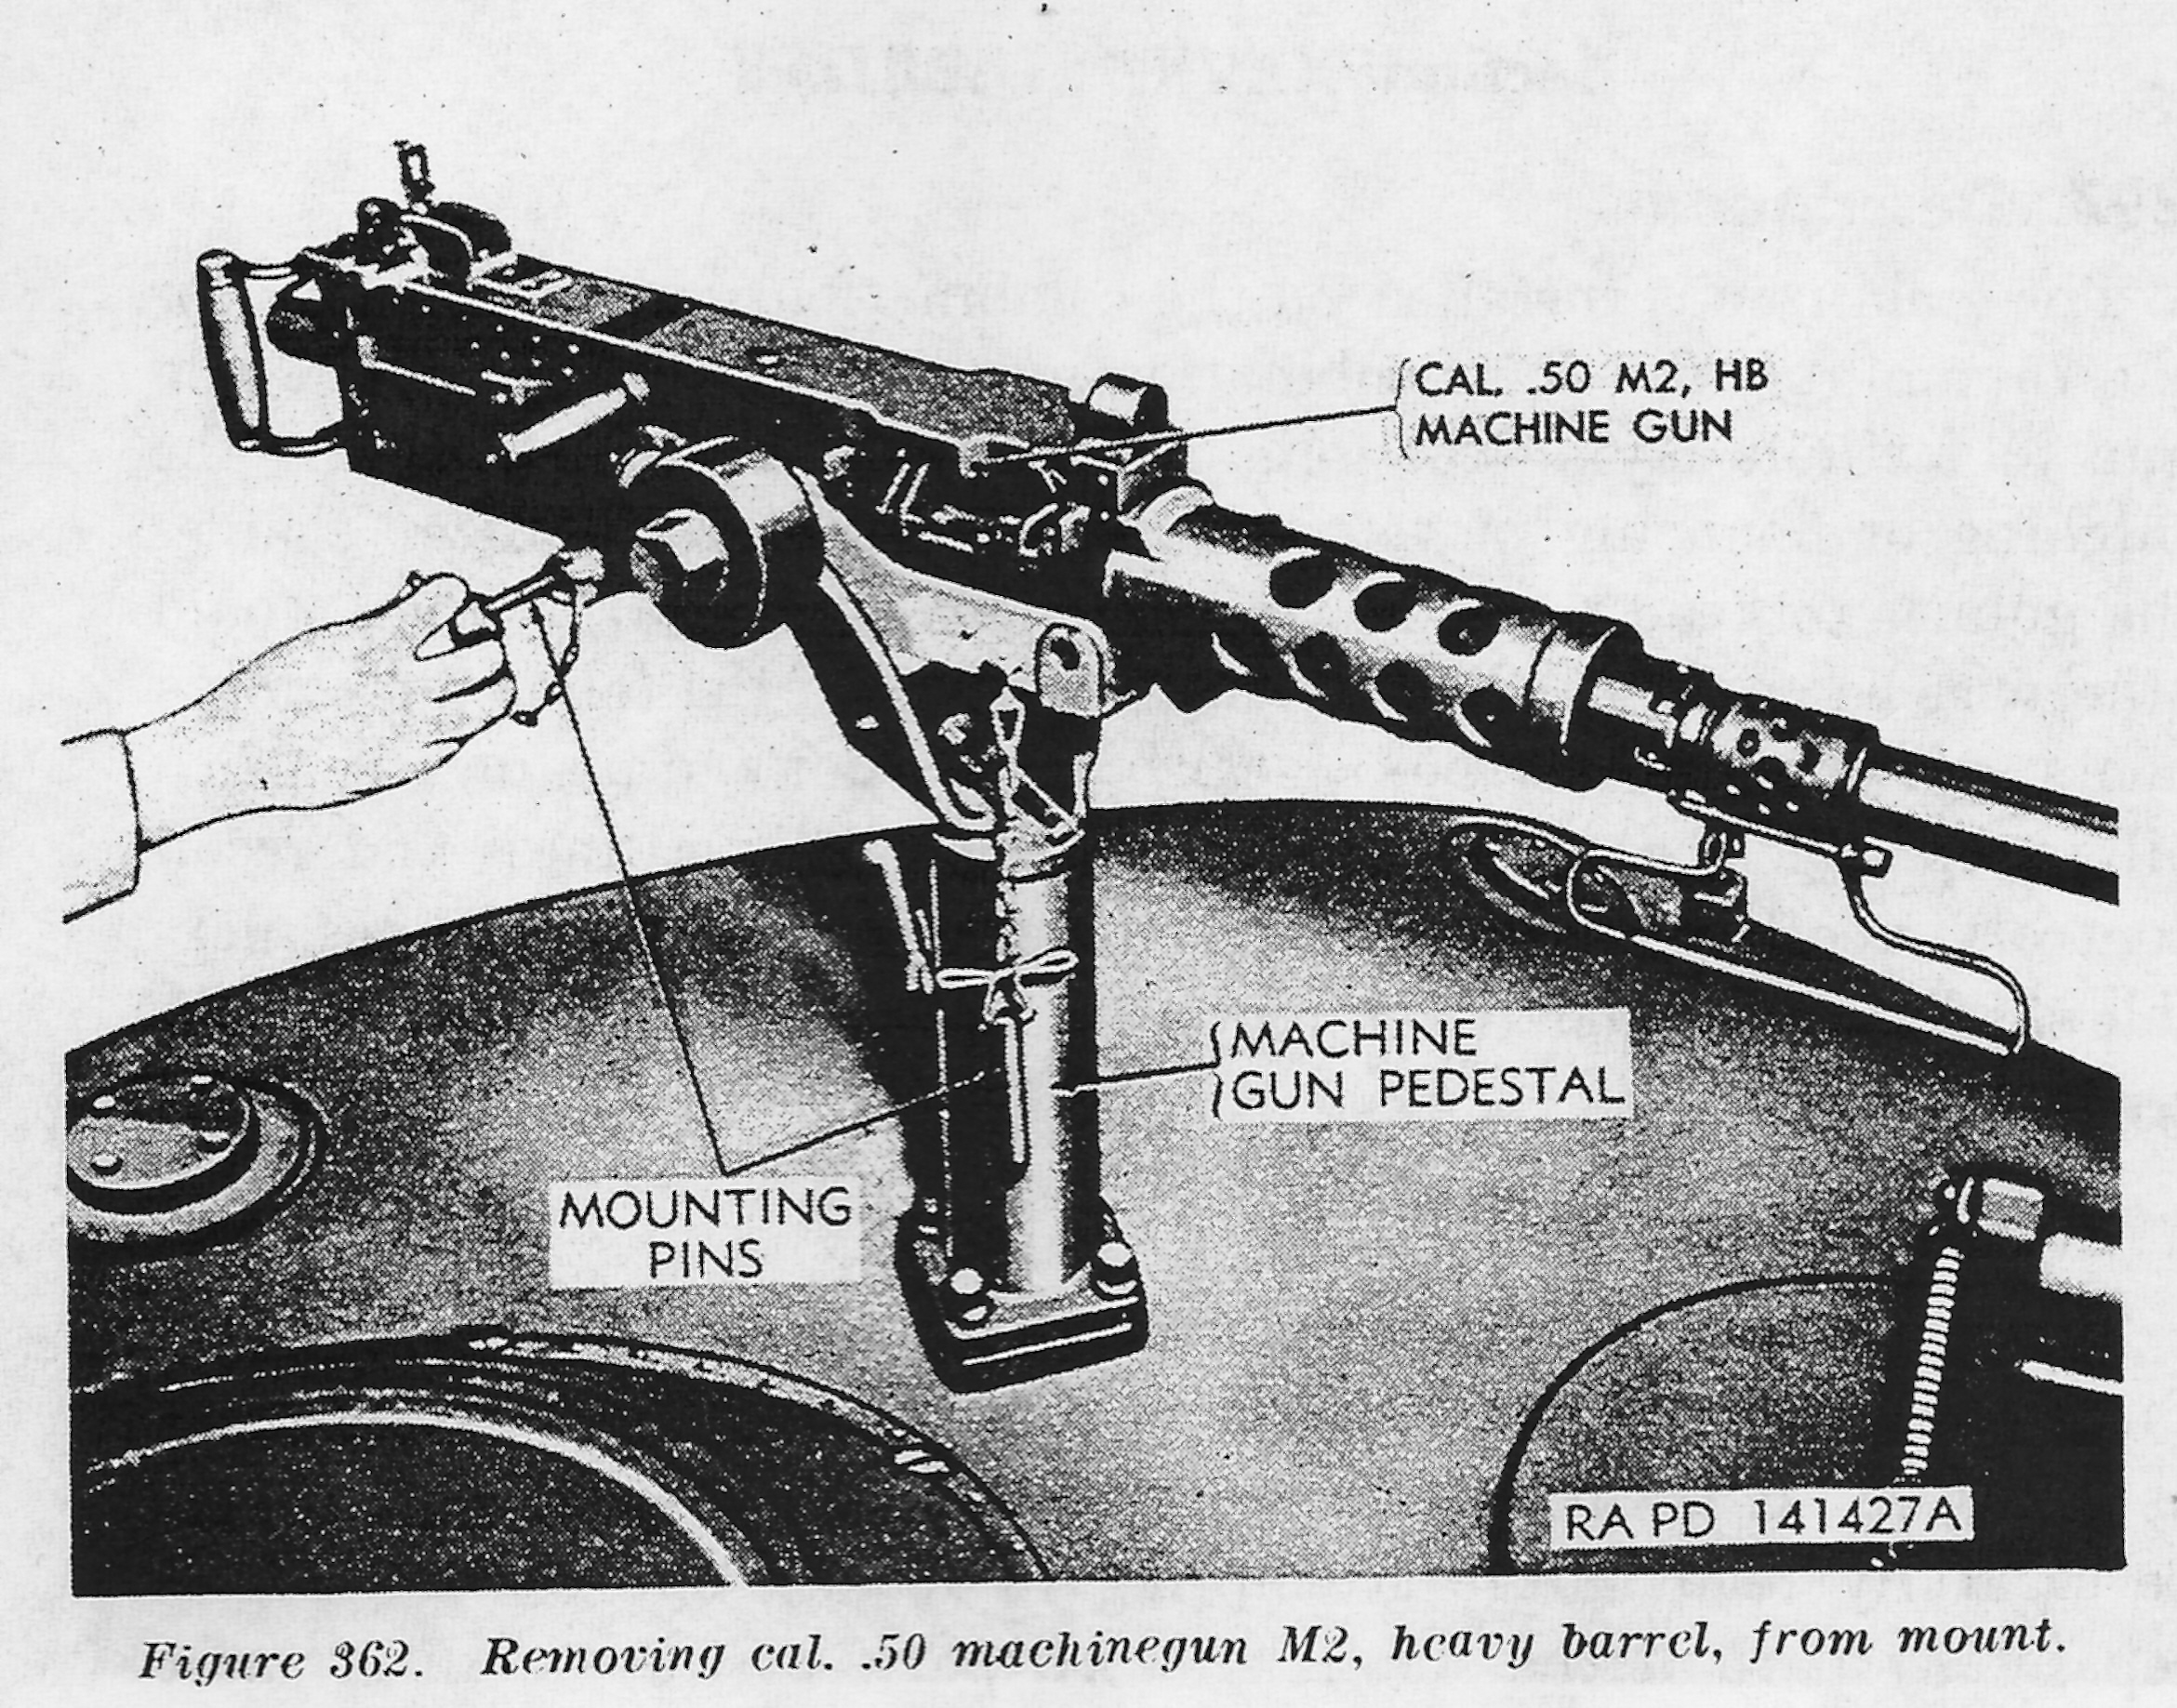 m4 sherman tank small arms page the machineguns and their mounts